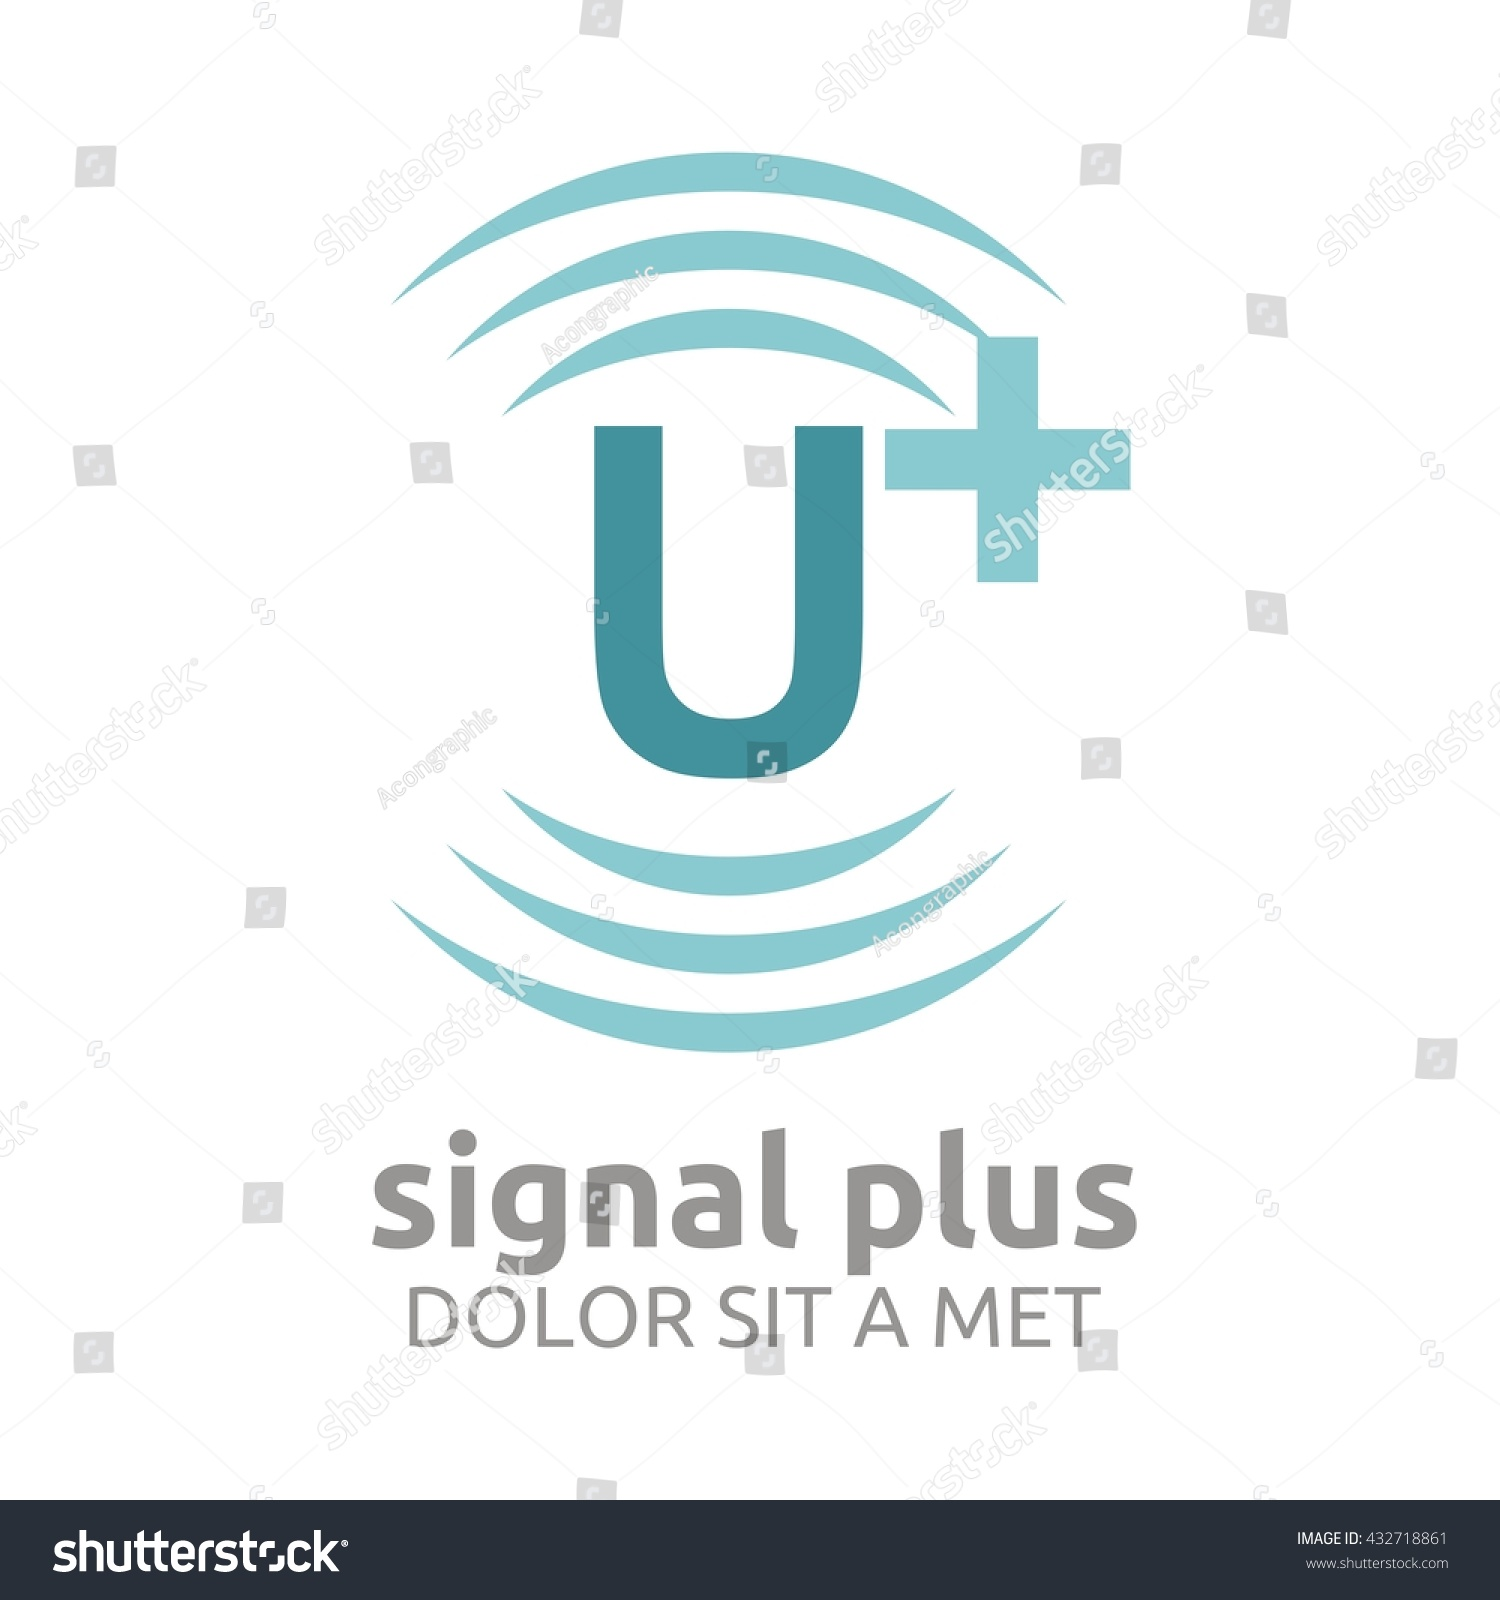 Signal plus wifi plus sign design stock vector 432718861 signal plus with wifi plus sign design vector template add wifi symbol wireless network buycottarizona